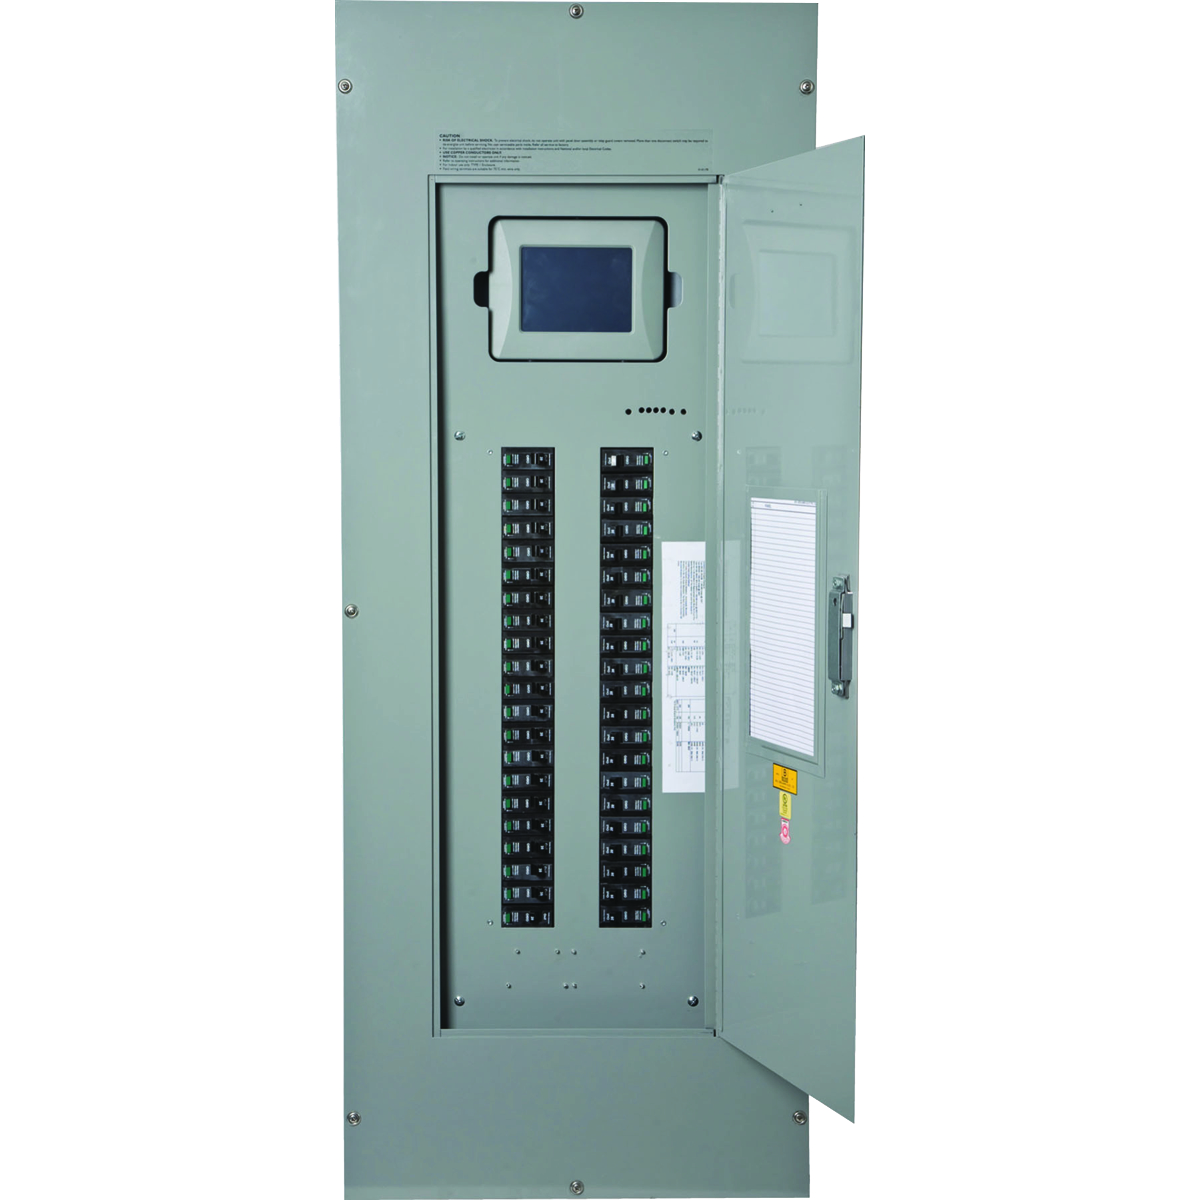 Lxbc Breaker Control Panels Brand Hubbell Solutions 300 Amp Service Panel Wiring Diagram